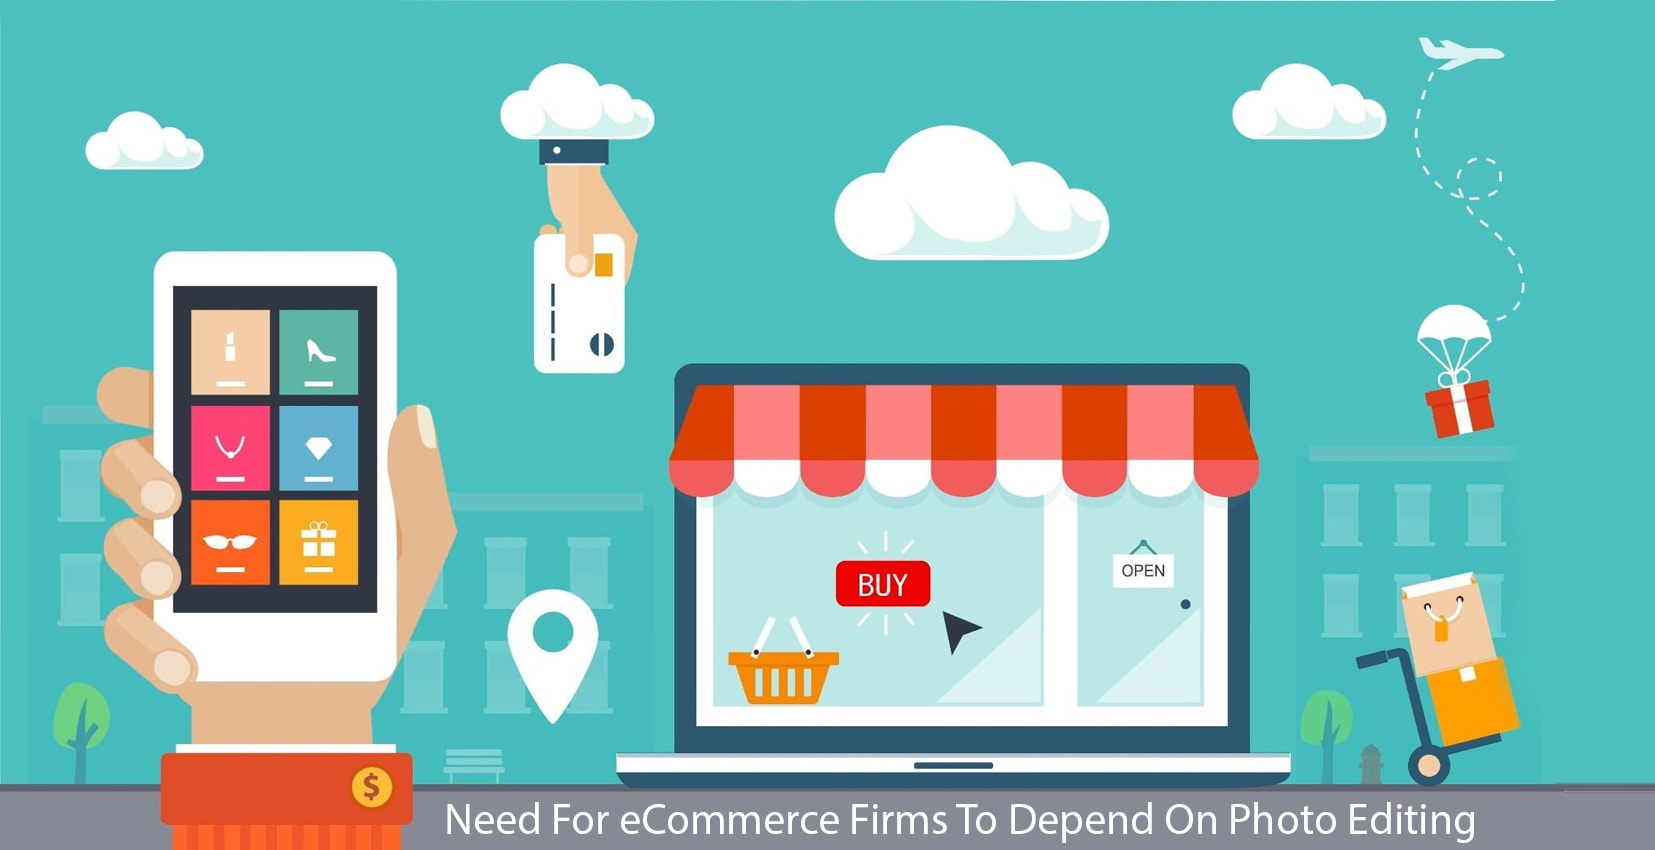 ECommerce-firms-to-depend-on-photo-editing-2